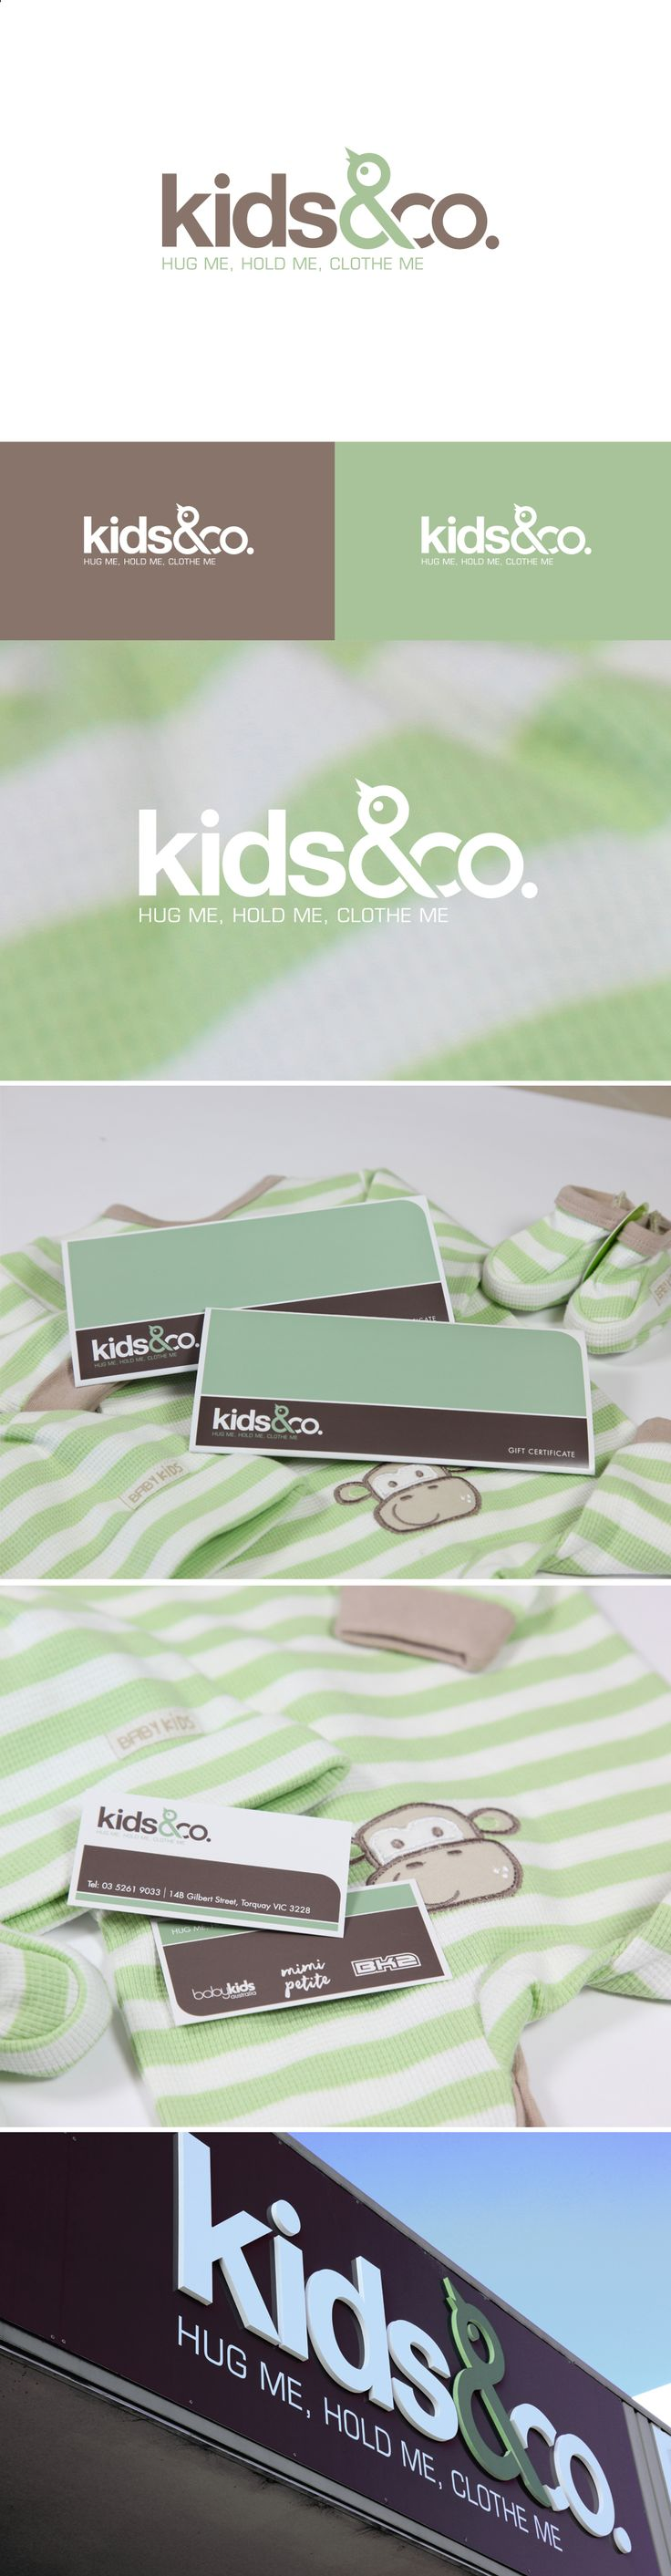 Kids & Co. rebrand included logo, stationery, gift voucher and signage.